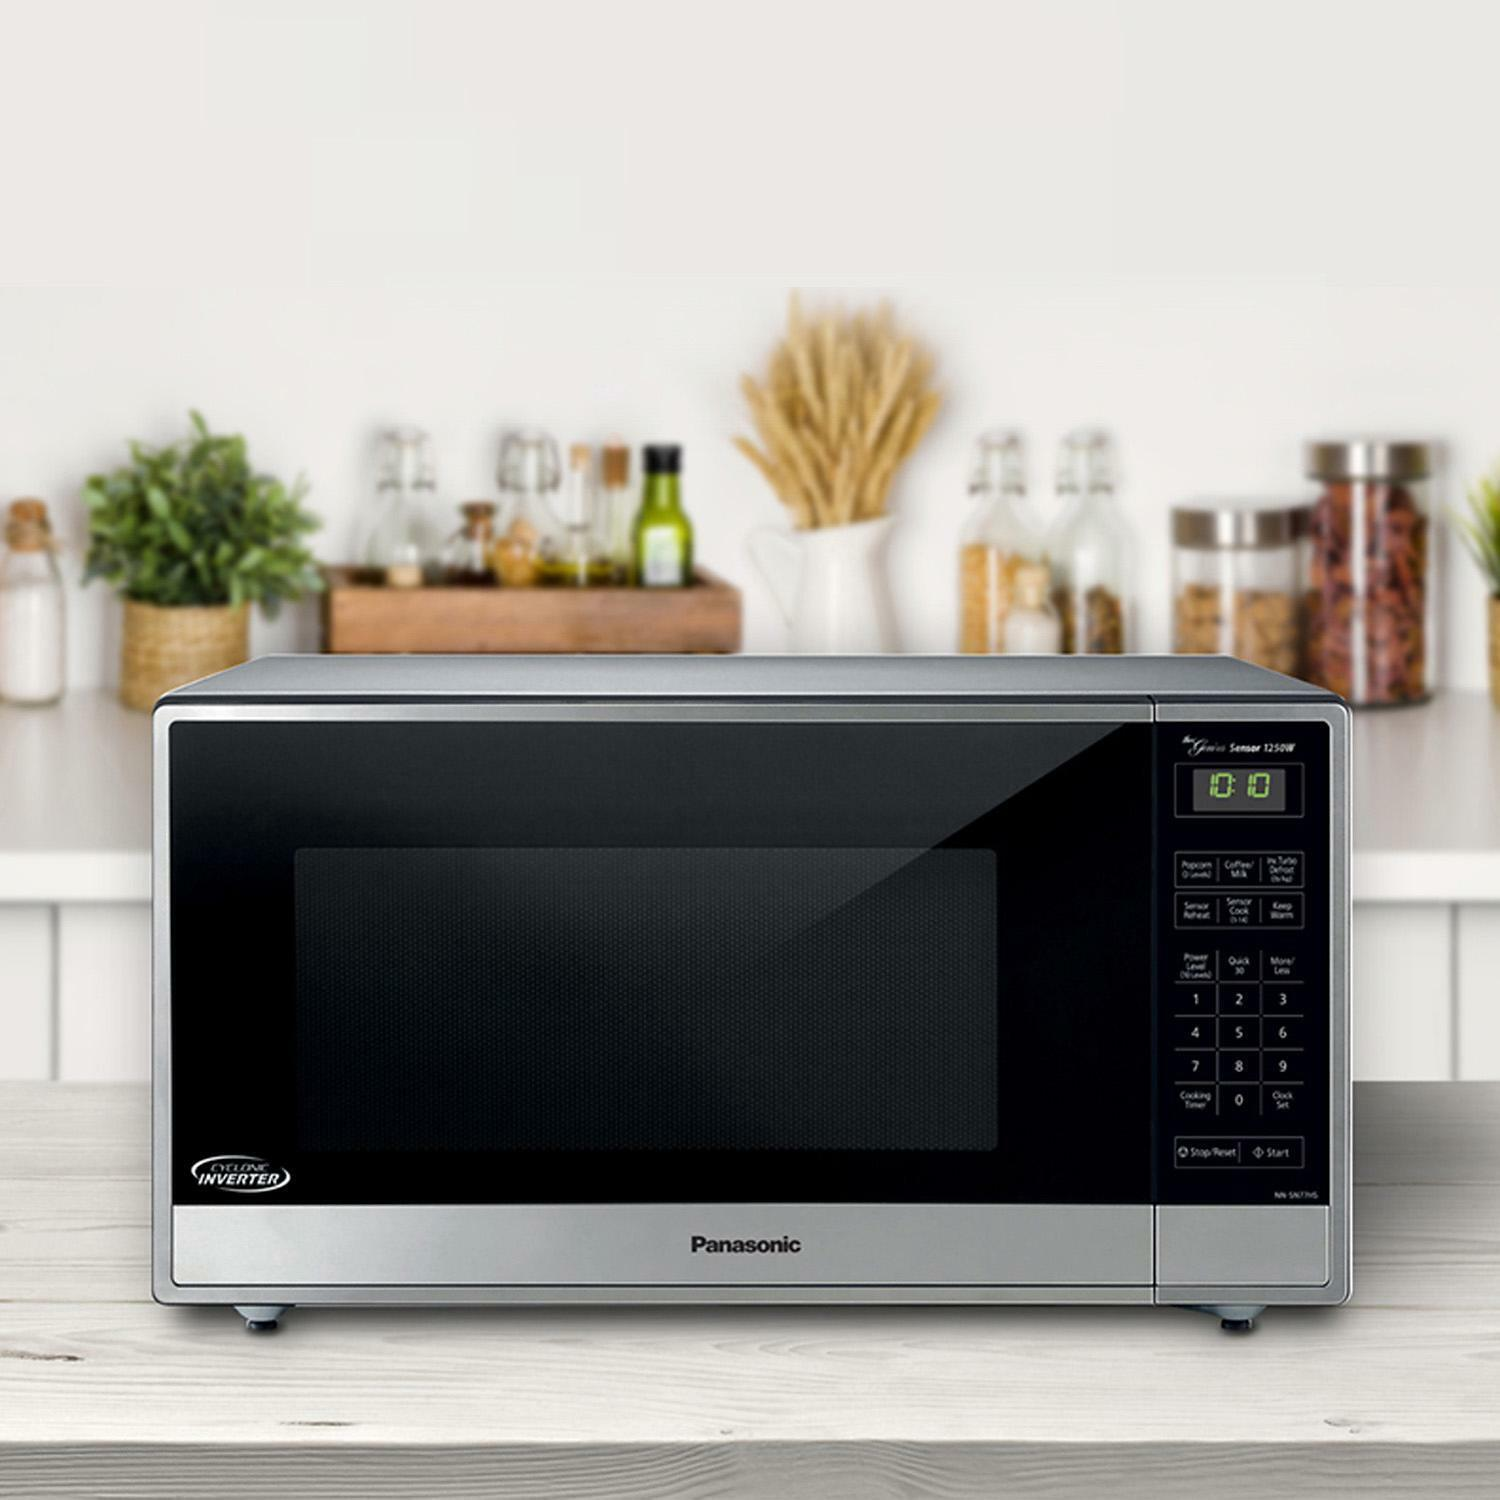 Panasonic Countertop Microwave Oven W Inverter Technology Model Nn Sn744sa For Sale Online